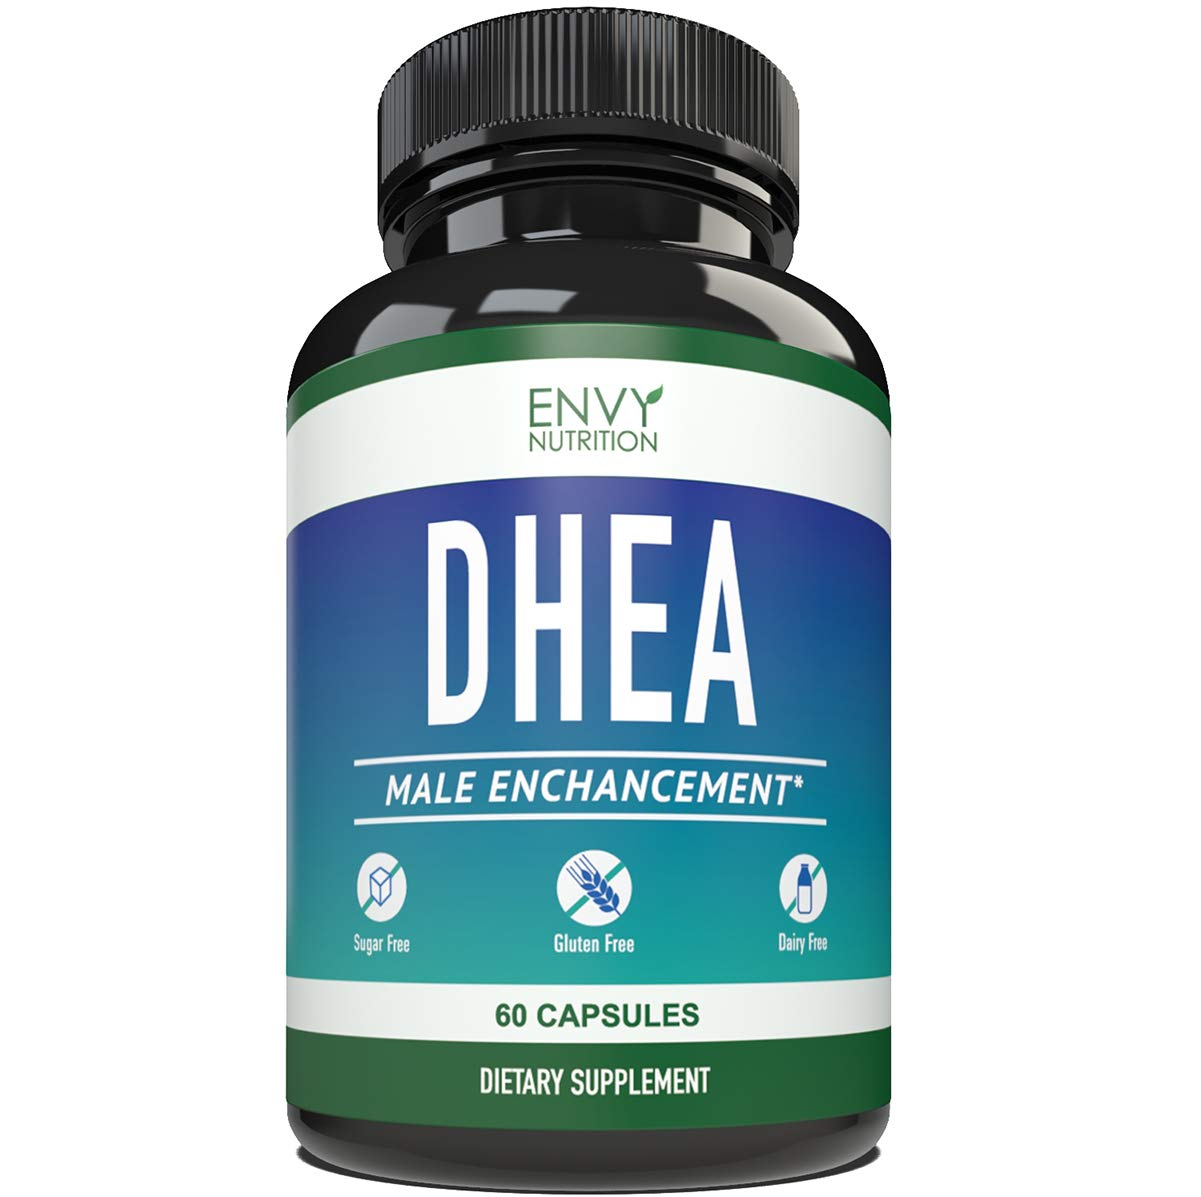 Envy Nutrition DHEA Enhancement Capsules